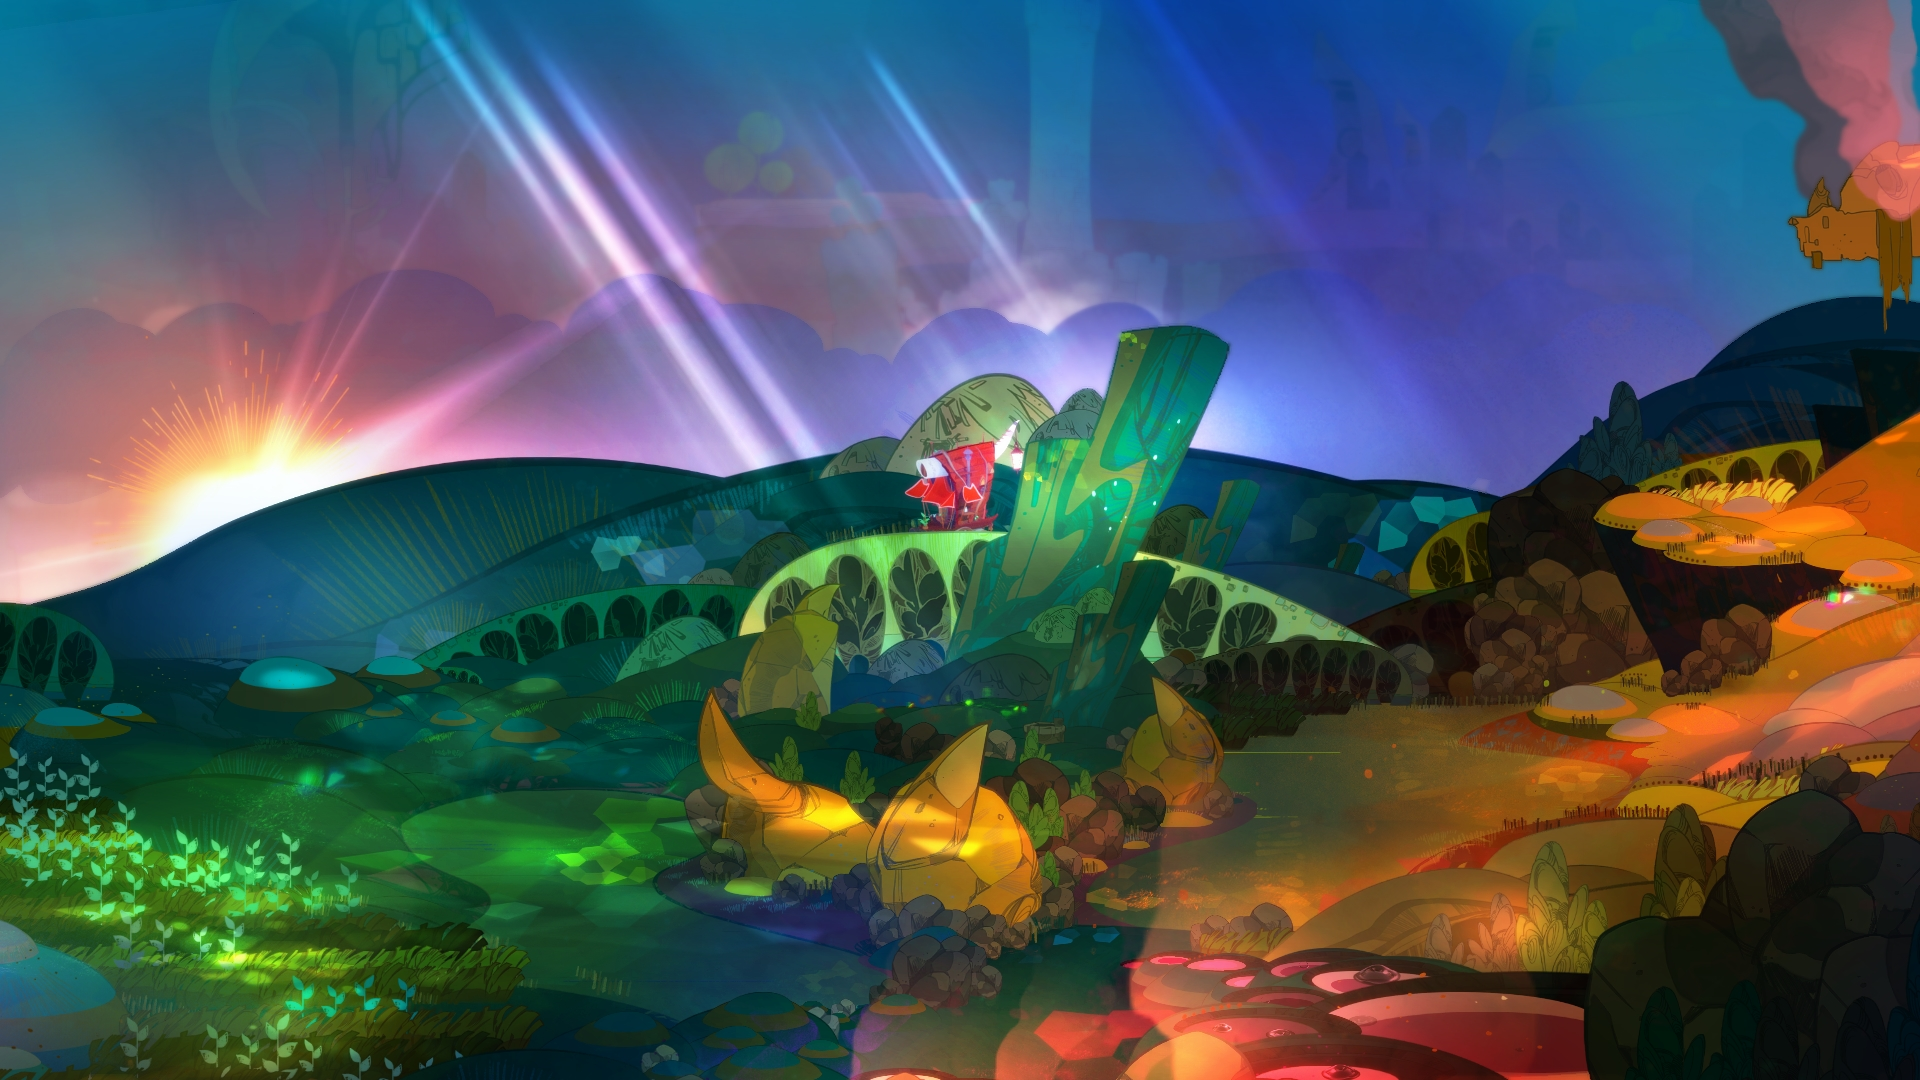 Supergiants Pyre Focuses on Companionship and a Little Bit of 1920x1080